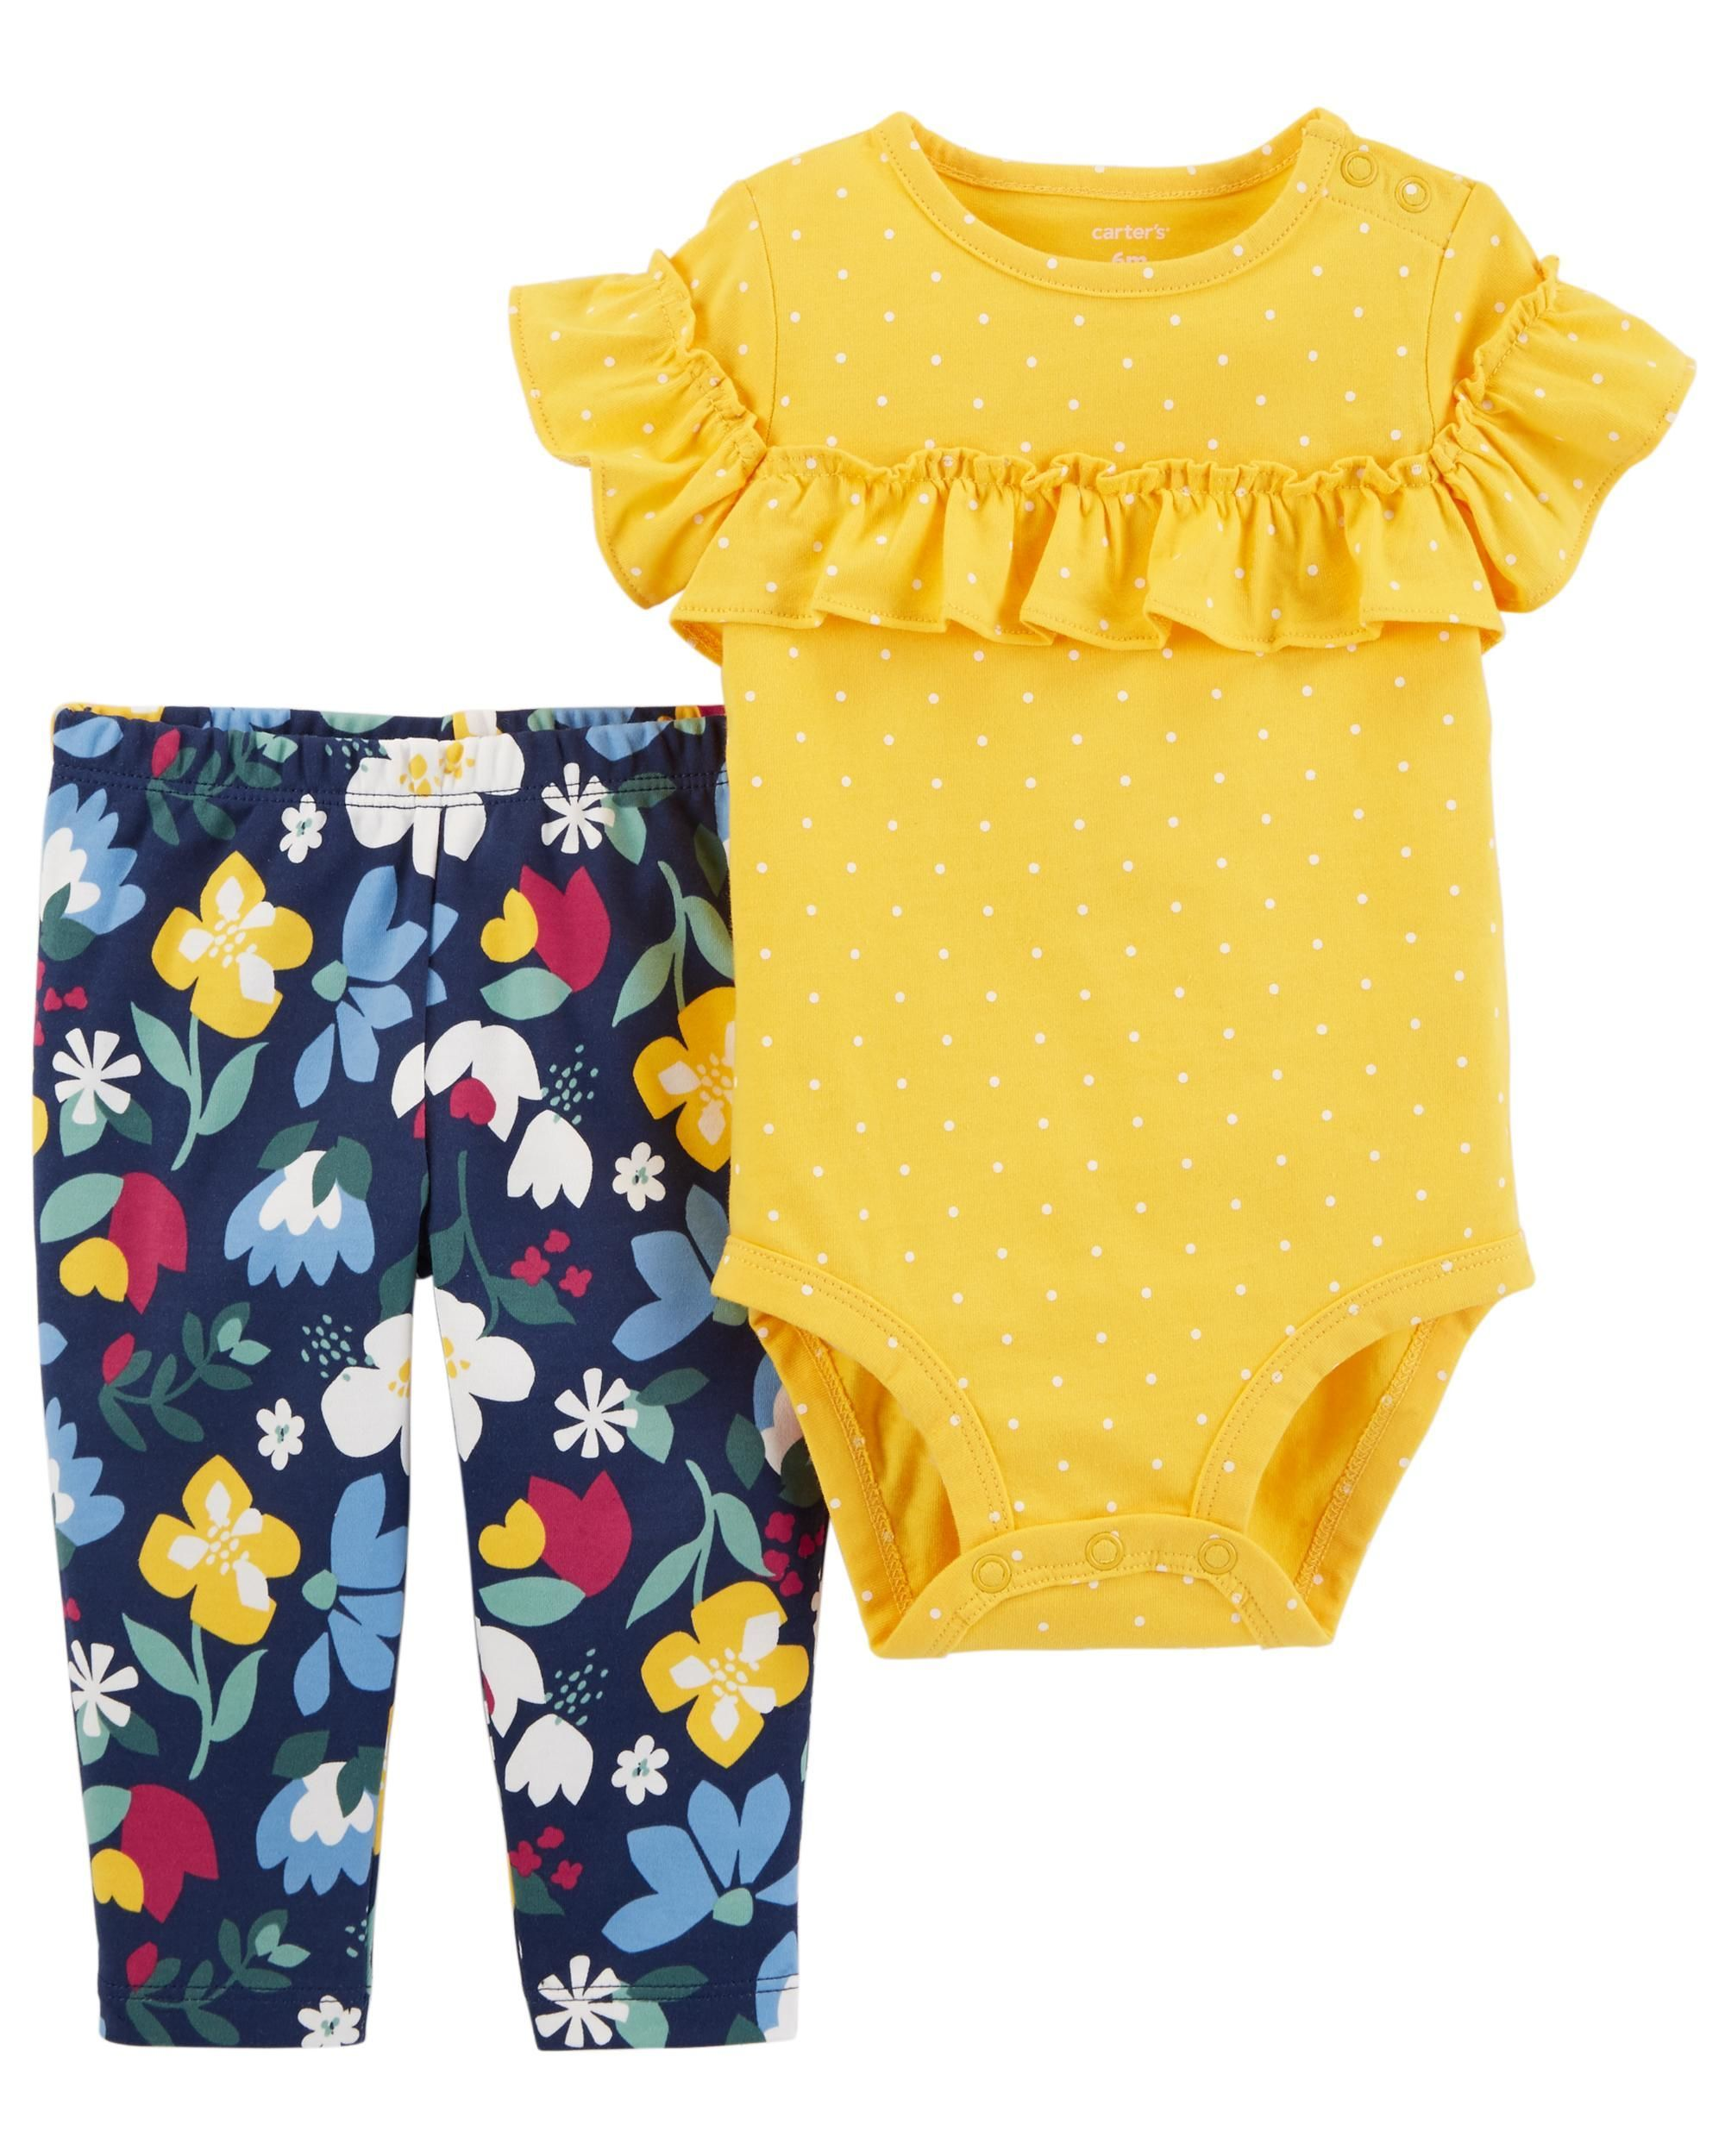 2 Piece Bodysuit Pant Set